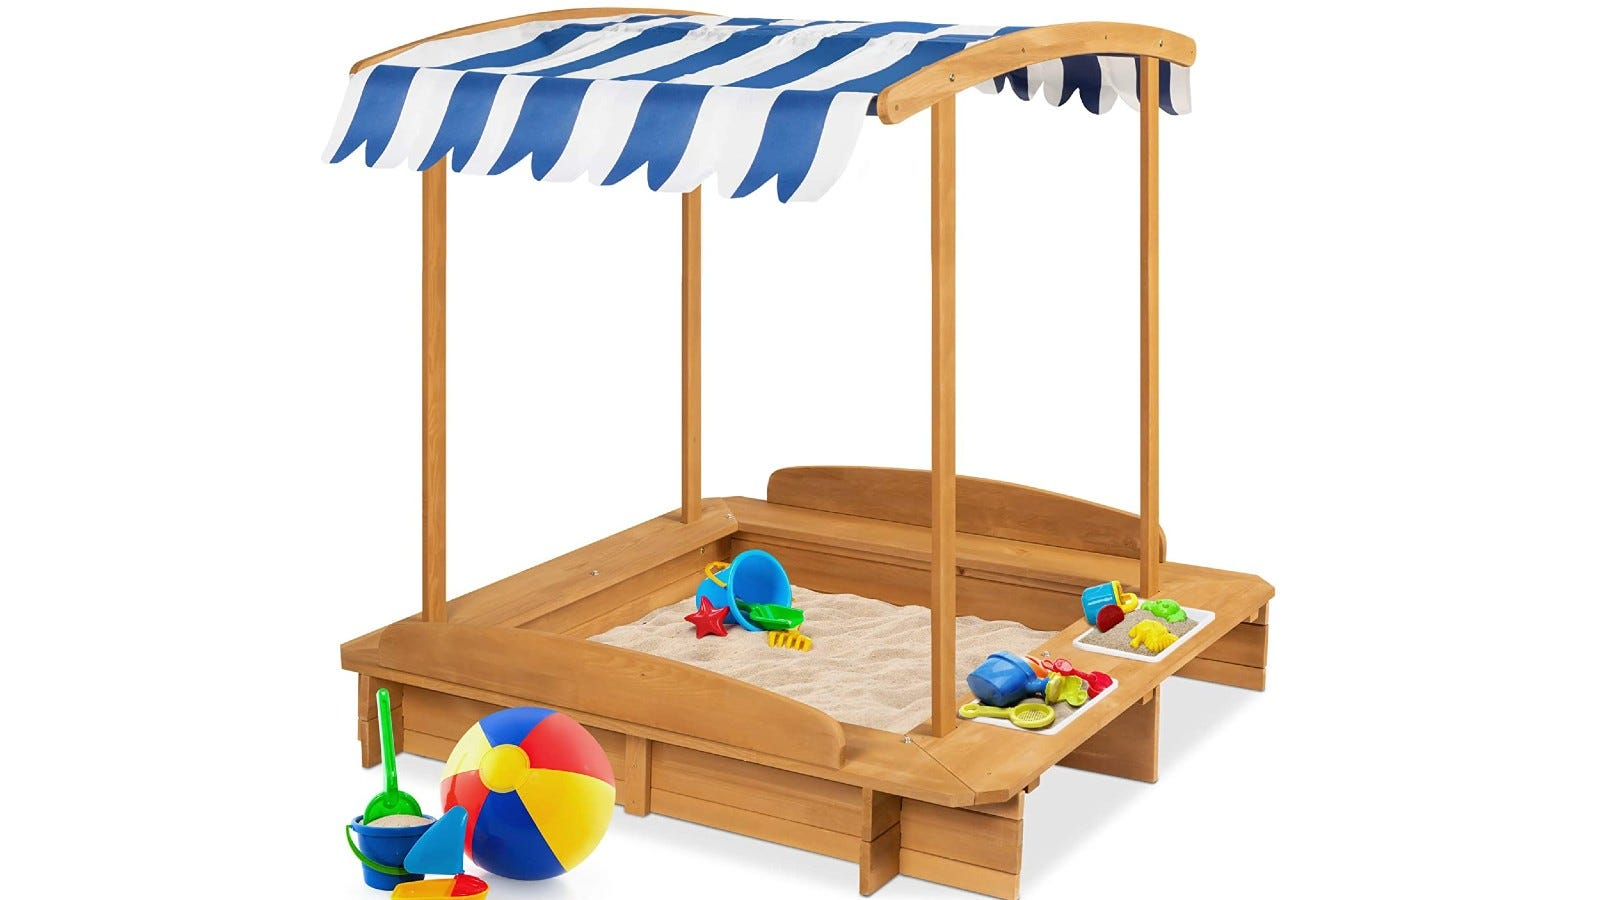 large wooden sandbox with a blue and white striped canopy